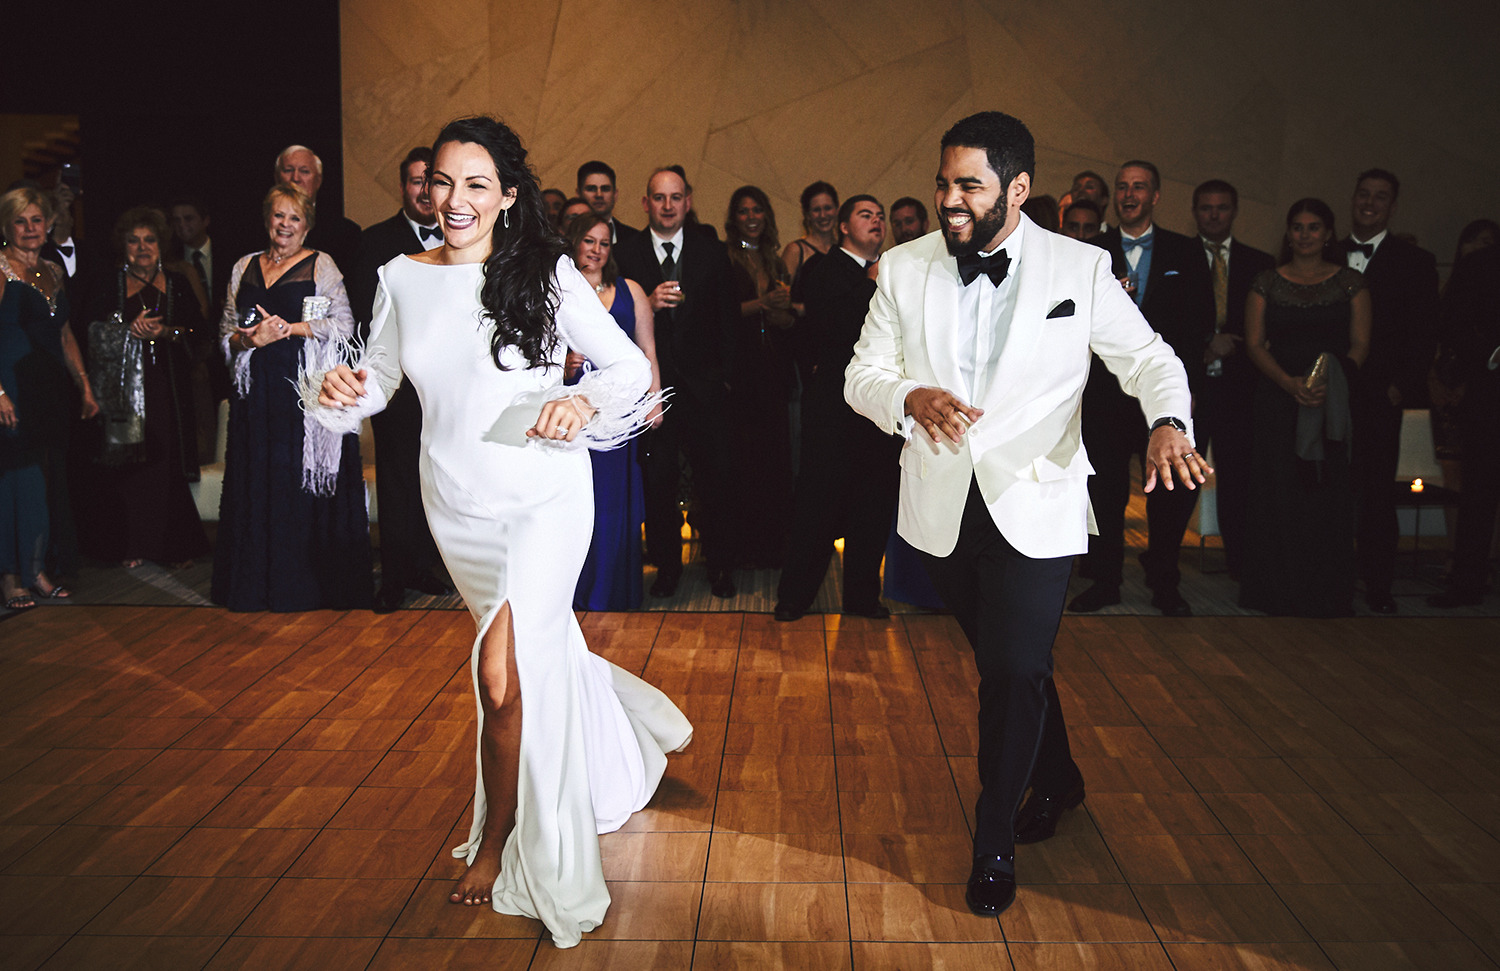 170930_WilliamValeWeddingPhotography_BrooklynWeddingPhotographer_By_BriJohnsonWeddings_0147.jpg